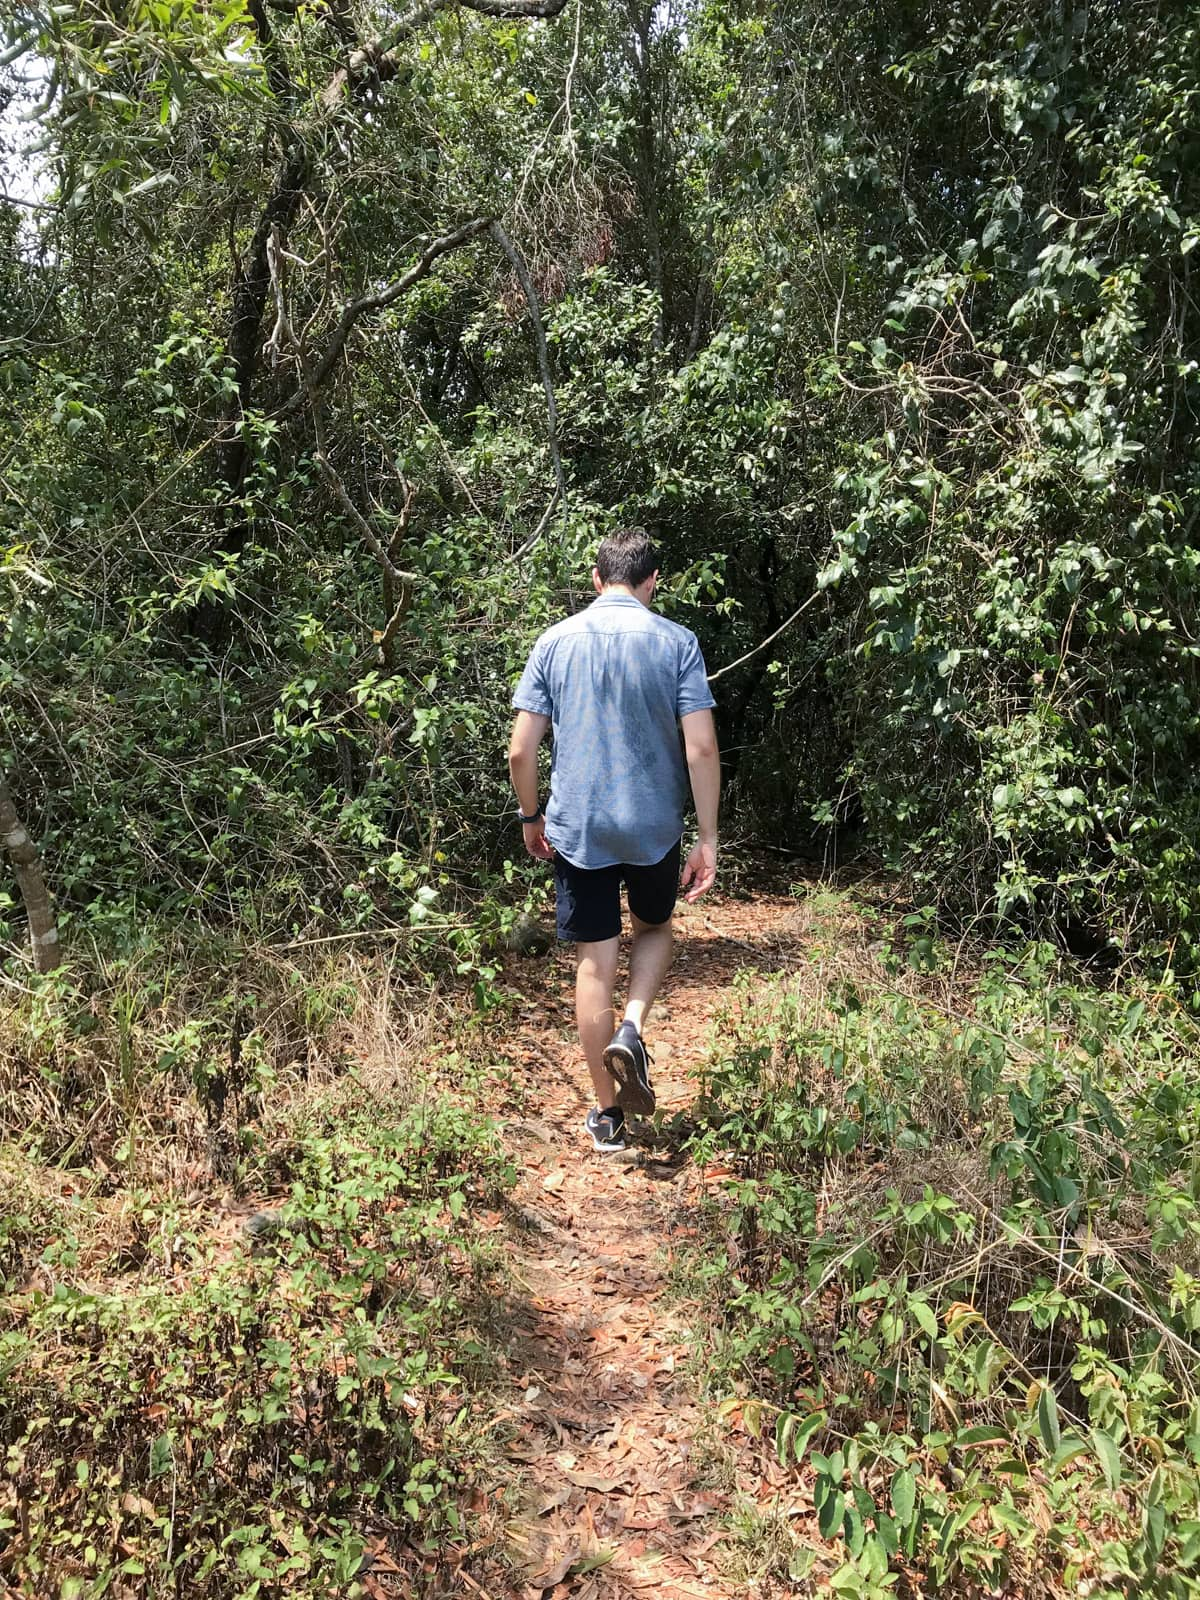 A man from behind, wearing a blue shirt and dark shorts. He is walking down a path into a bush